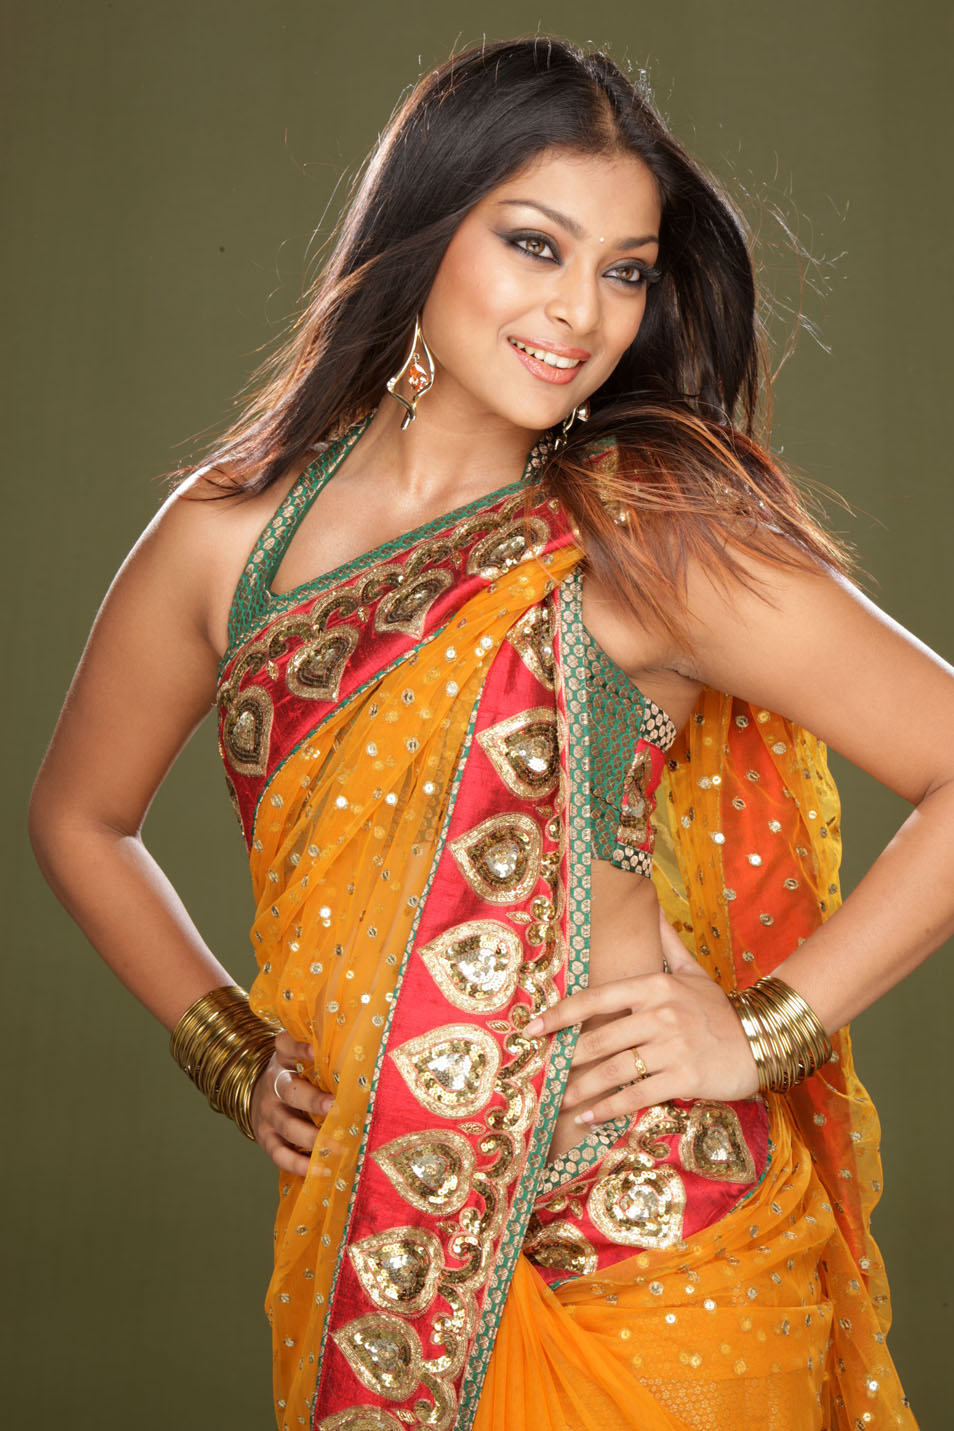 Soundarya in Orange Saree1 - Telugu Heroine Soundarya in Prange Saree Looking HOT